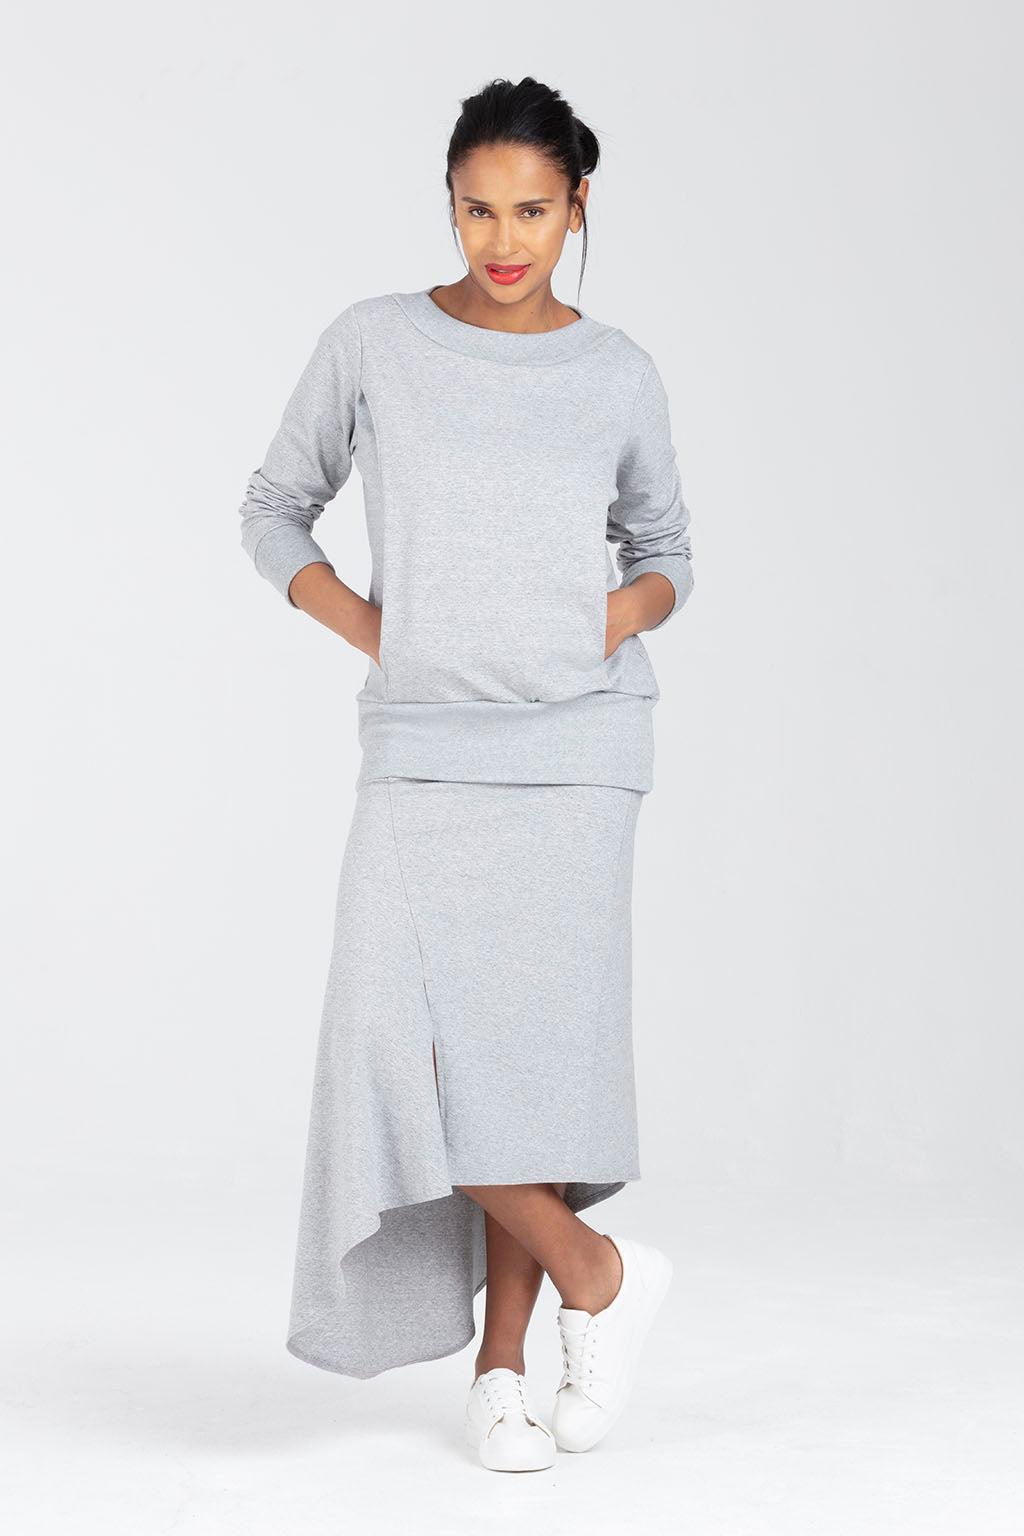 Soft Grey Postnatal C Section Skirt | Rosalind by Sarka London - Front View